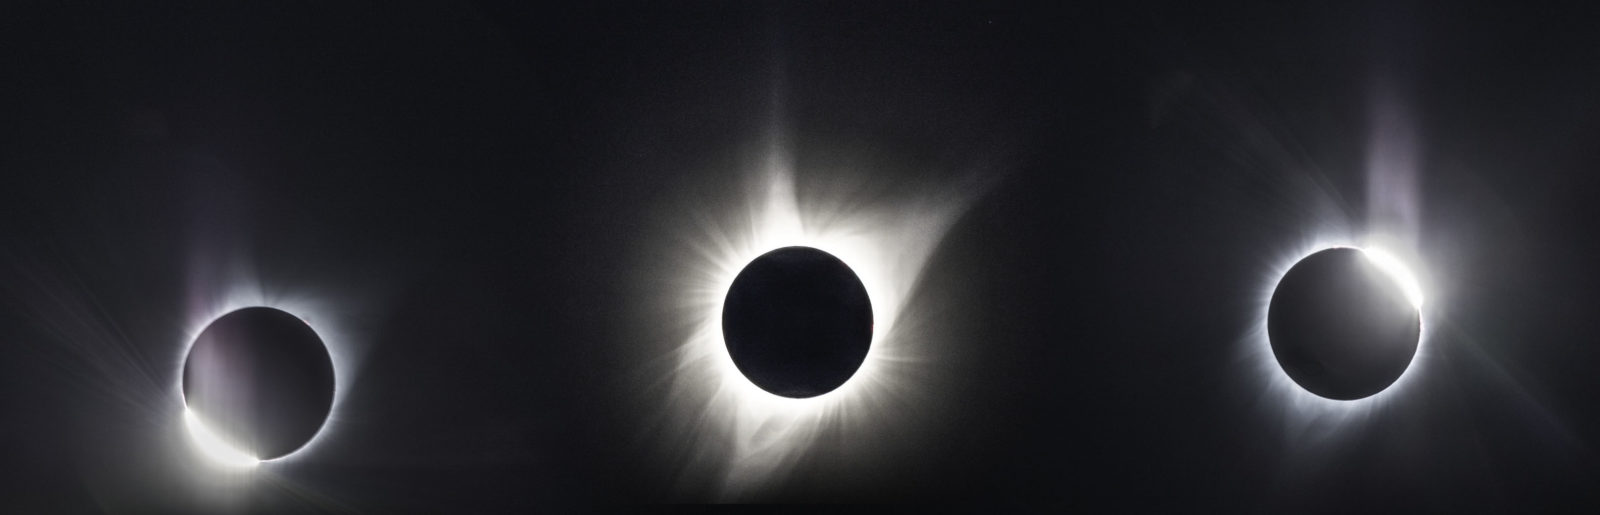 Stages of Totality, Total Solar Eclipse, August 2017